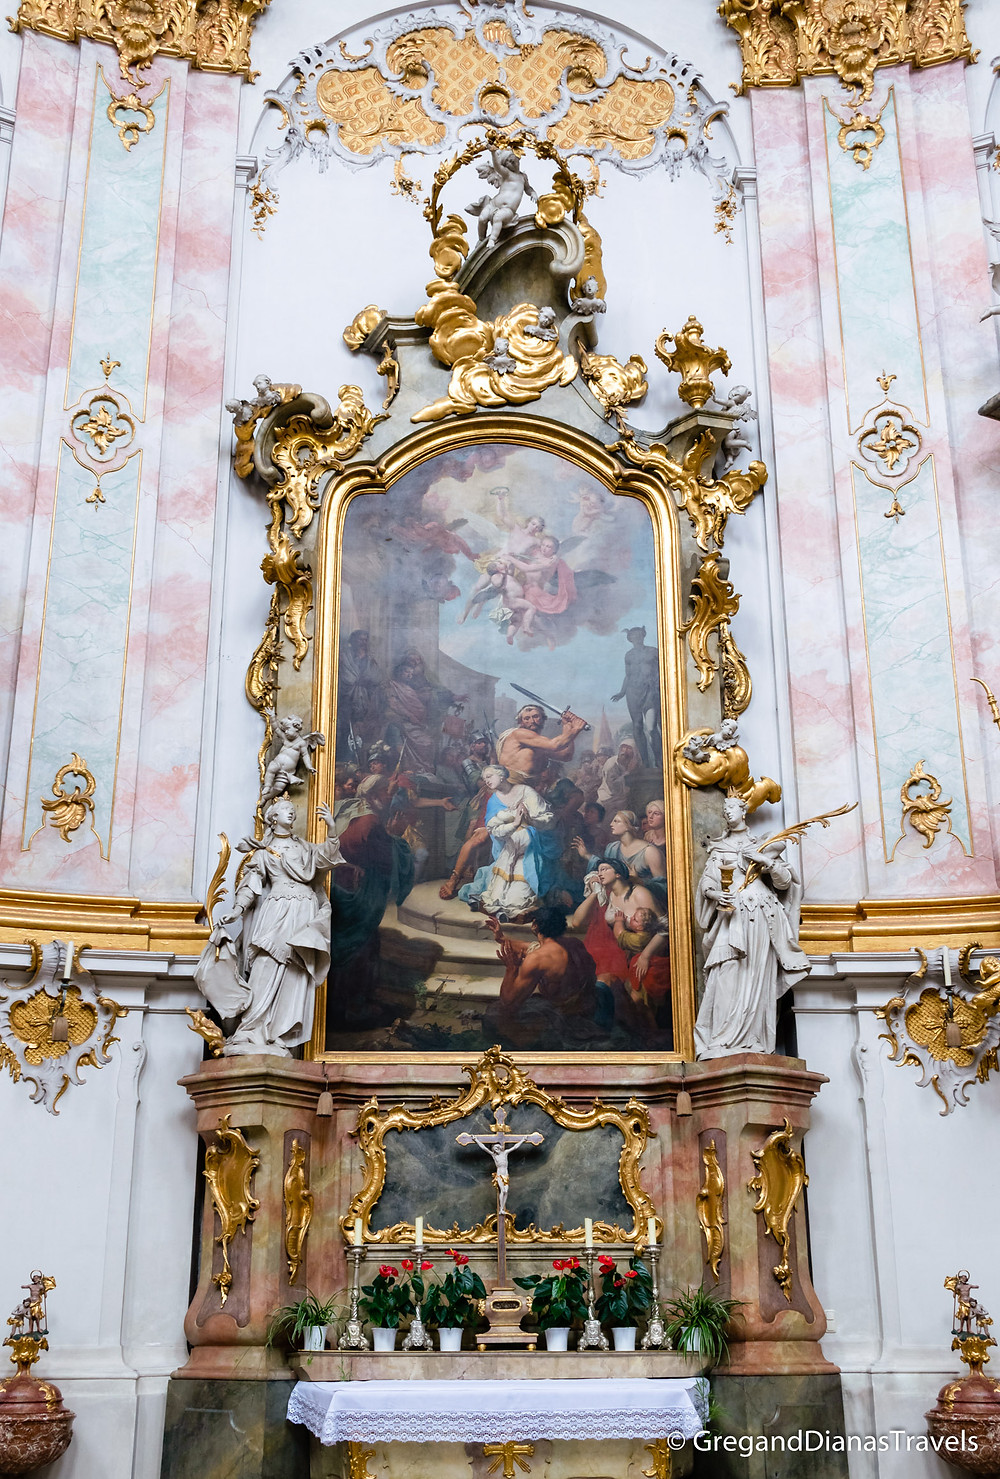 Ettal Abbey Church interior, Ettal Abbey, Bavaria Germany, Bayern Deutschland, Travel blog, Travel photography